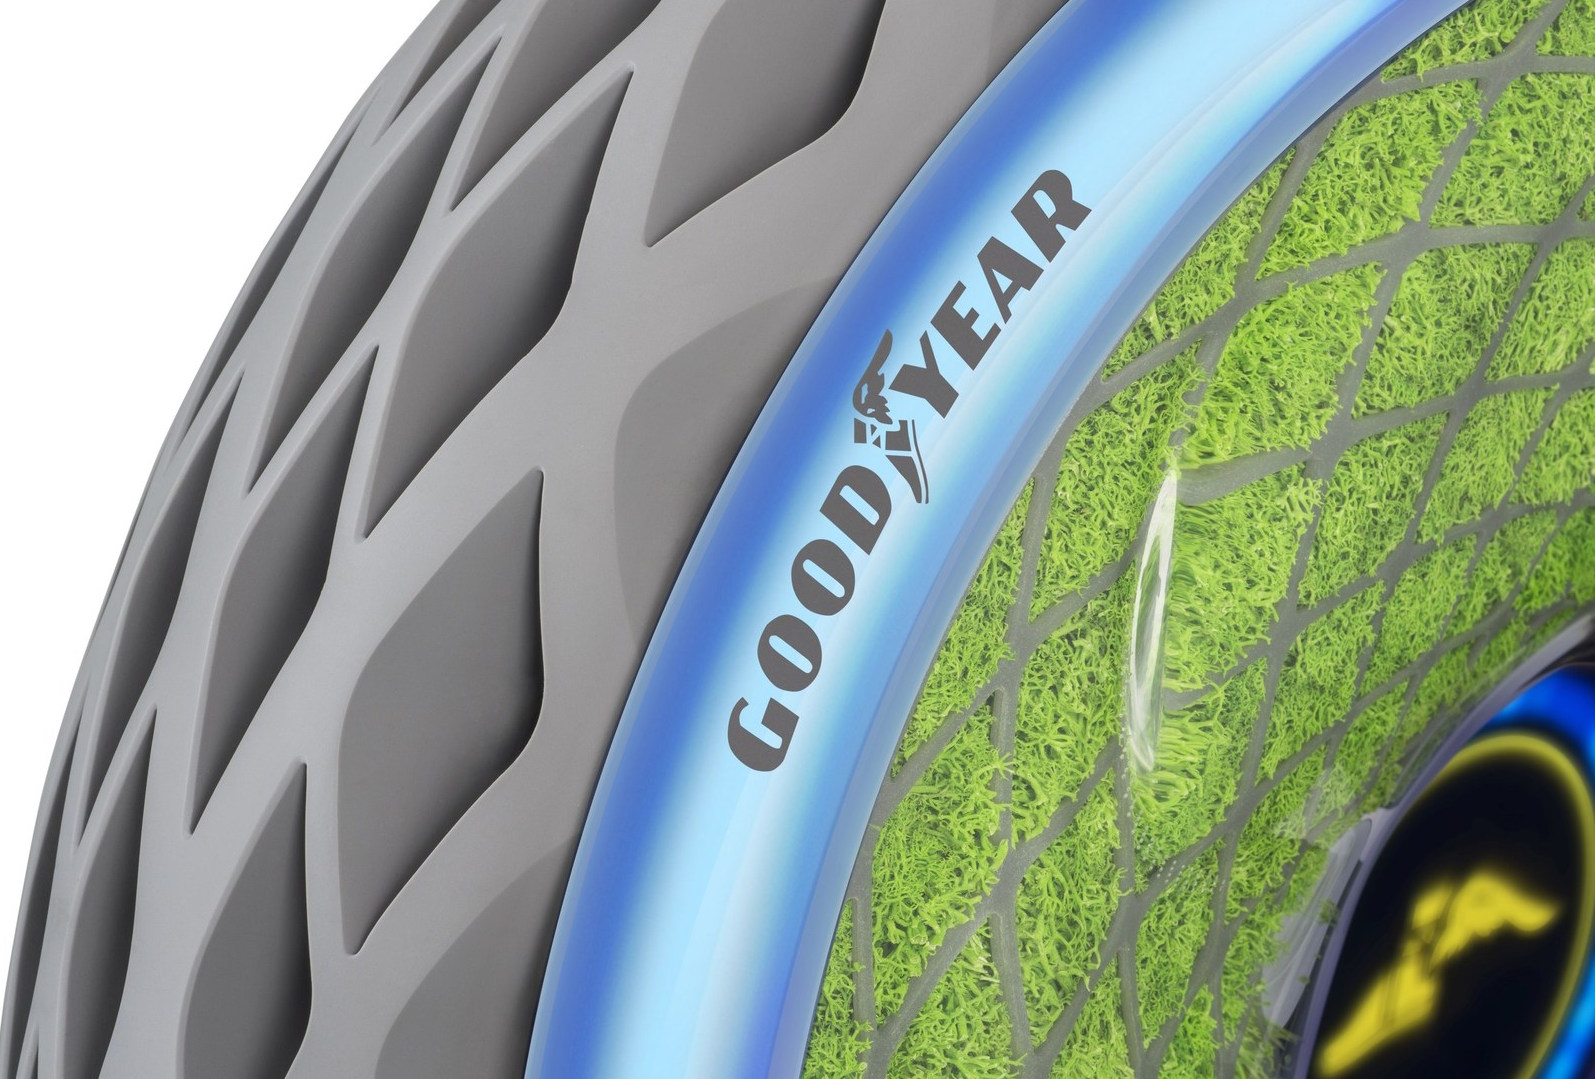 Tire titan Goodyear has announced the company's new eco-friendly concept tires which are embedded with moss to absorb carbon dioxide.